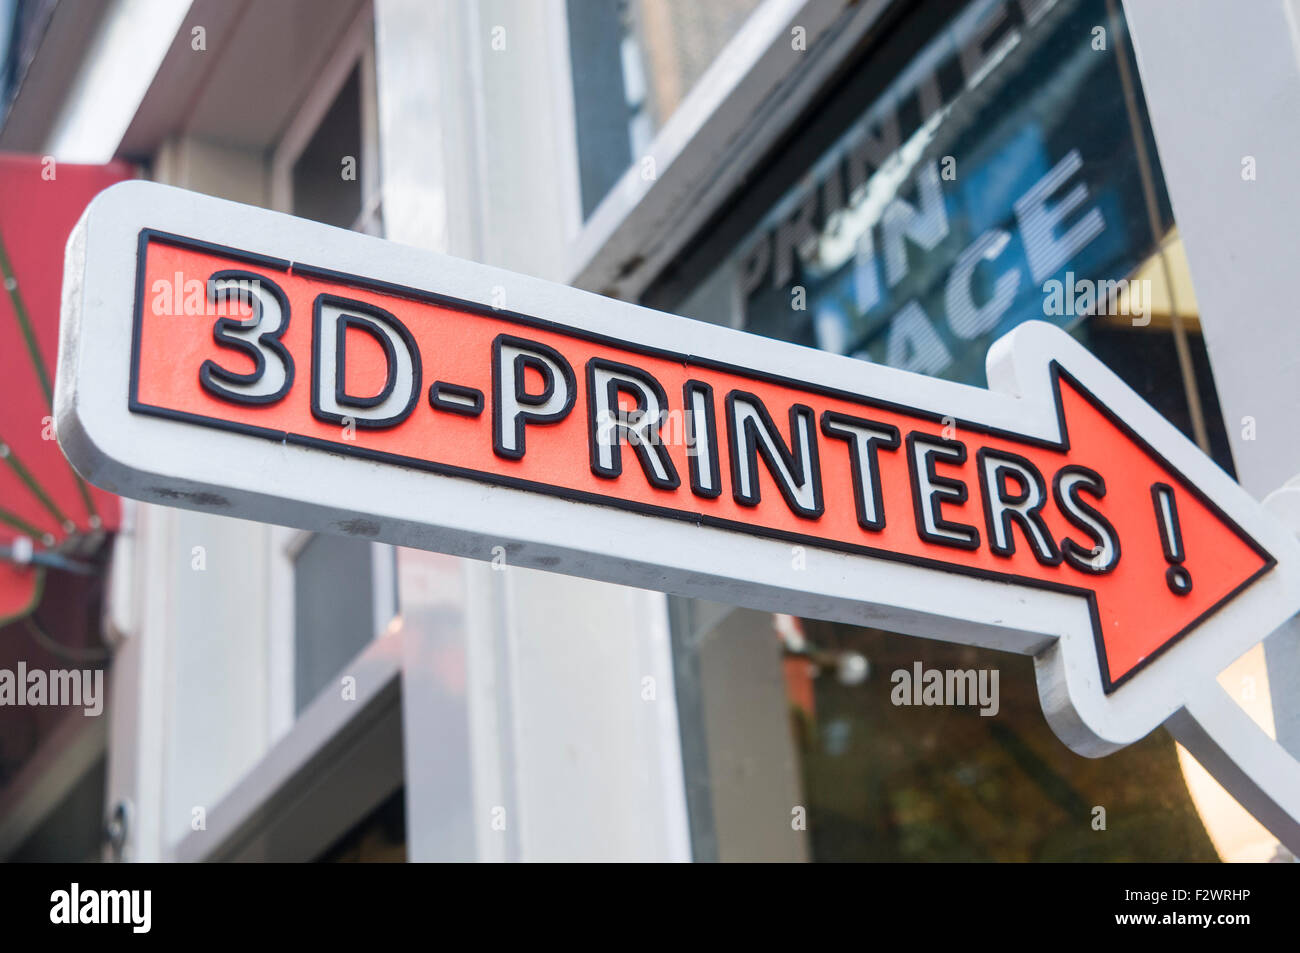 Sign outside a shop with 3D printers, who will manufacture small items. - Stock Image